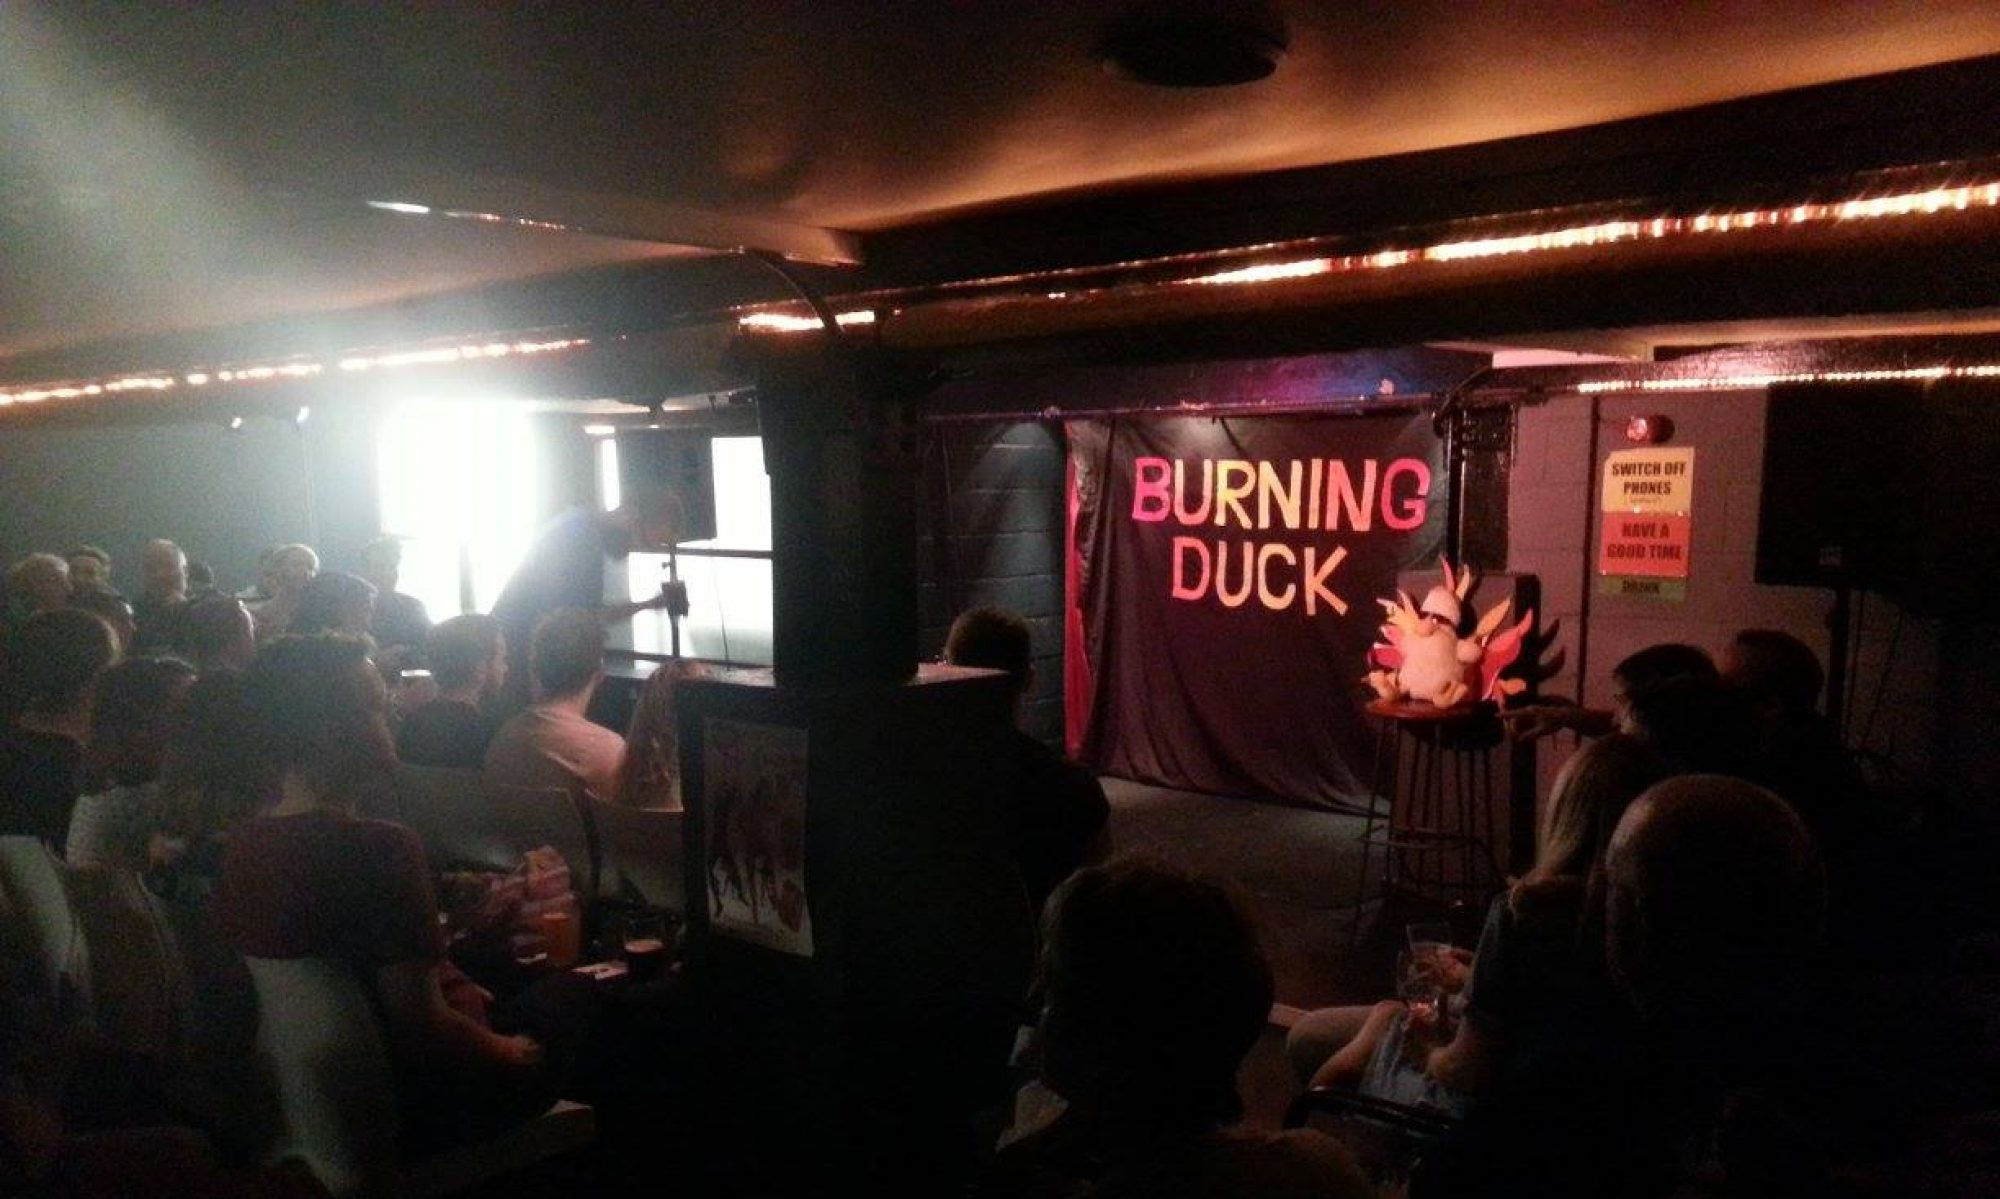 BURNING DUCK COMEDY CLUB